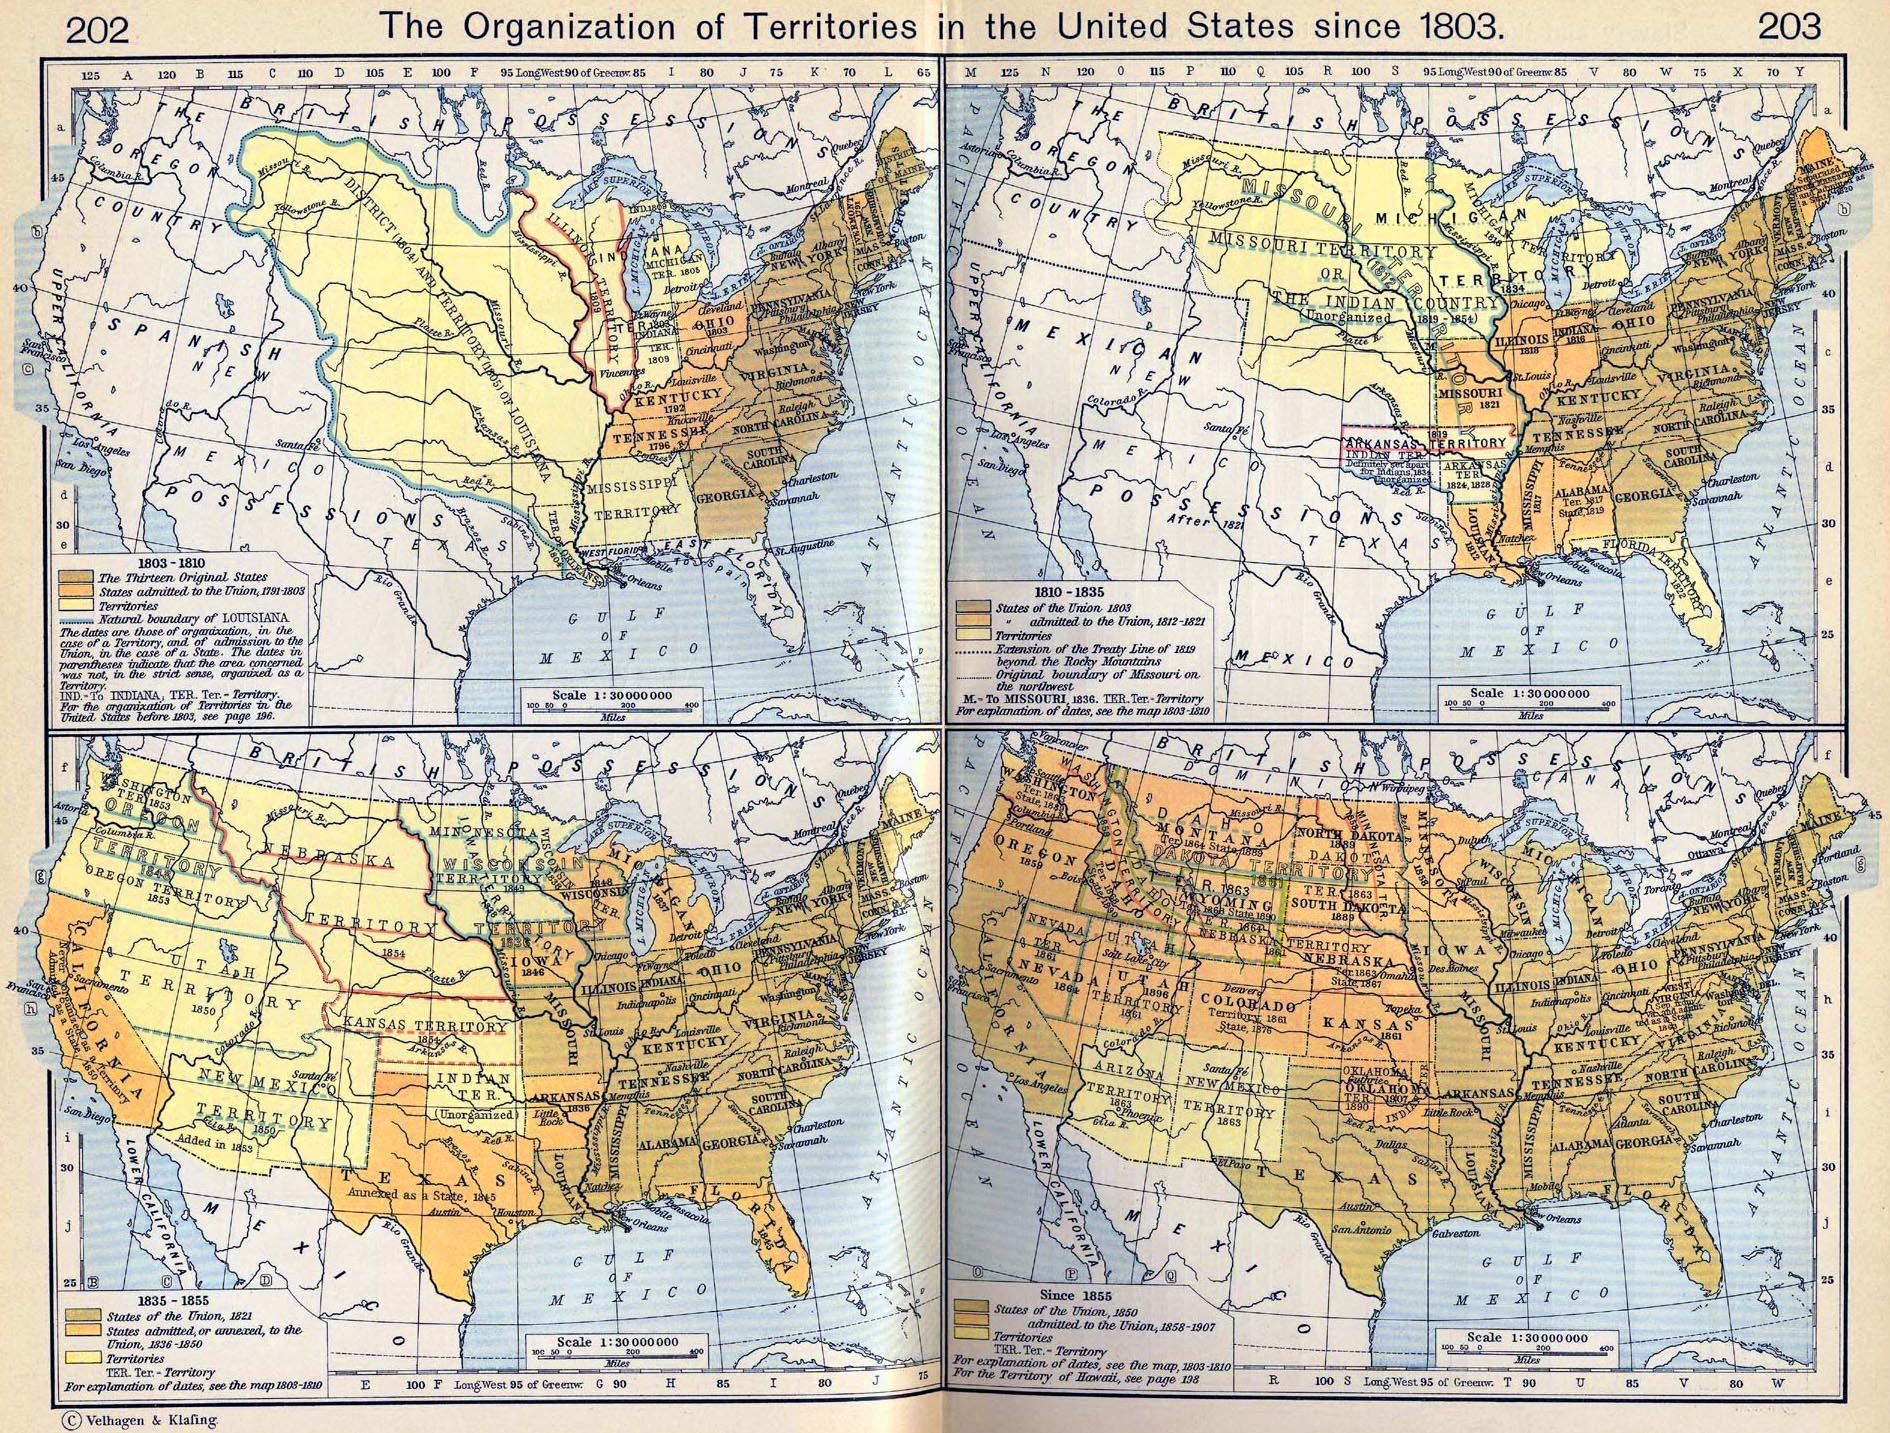 Map Of The United States Since - Map of us territories in 1803